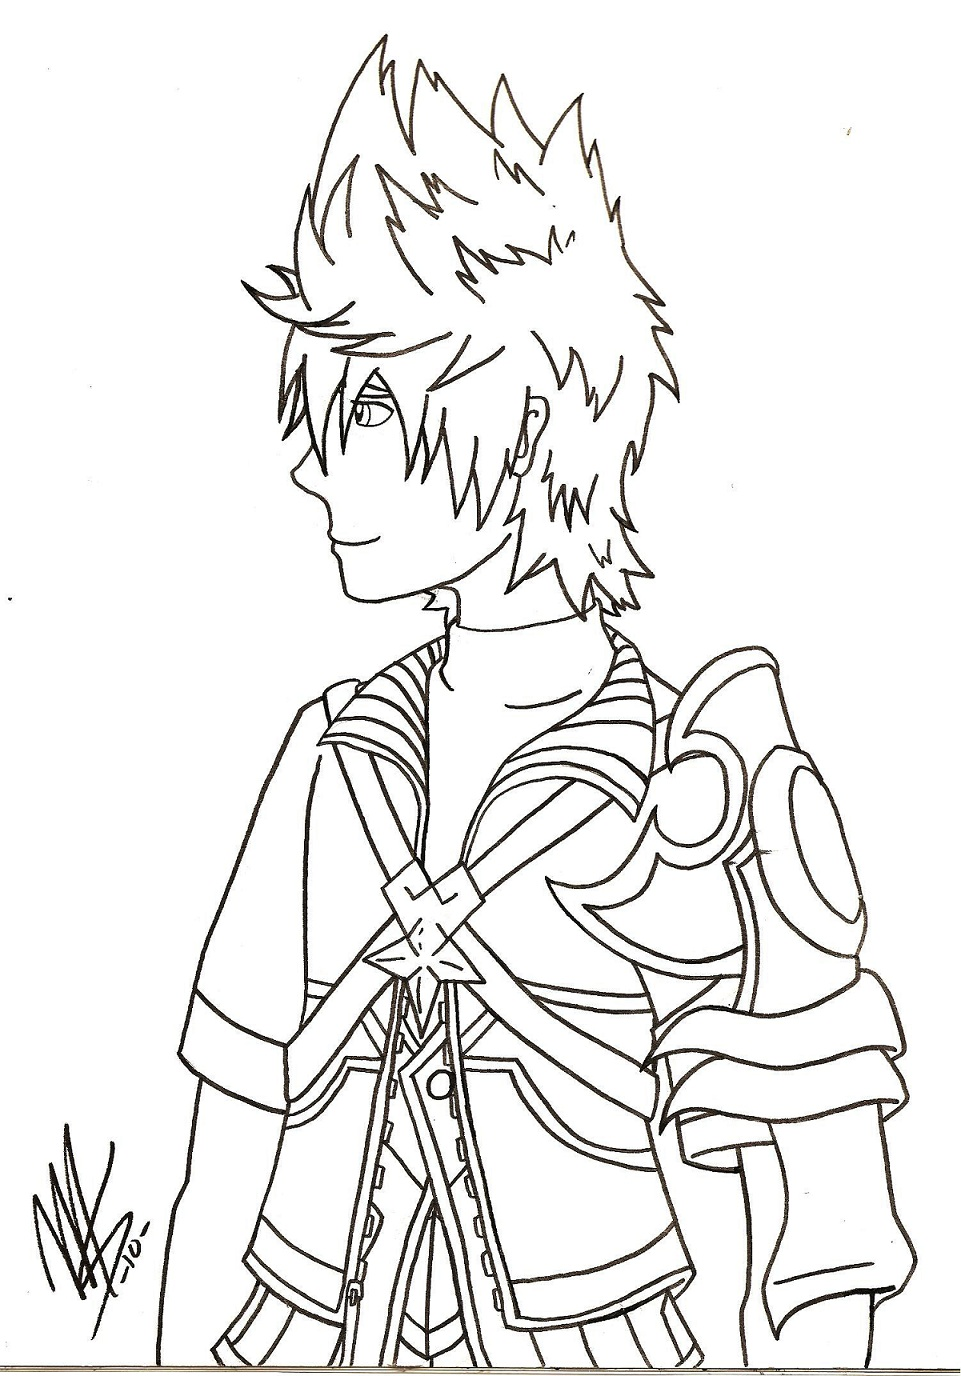 Ventus ~ Sketch by mechadragon13